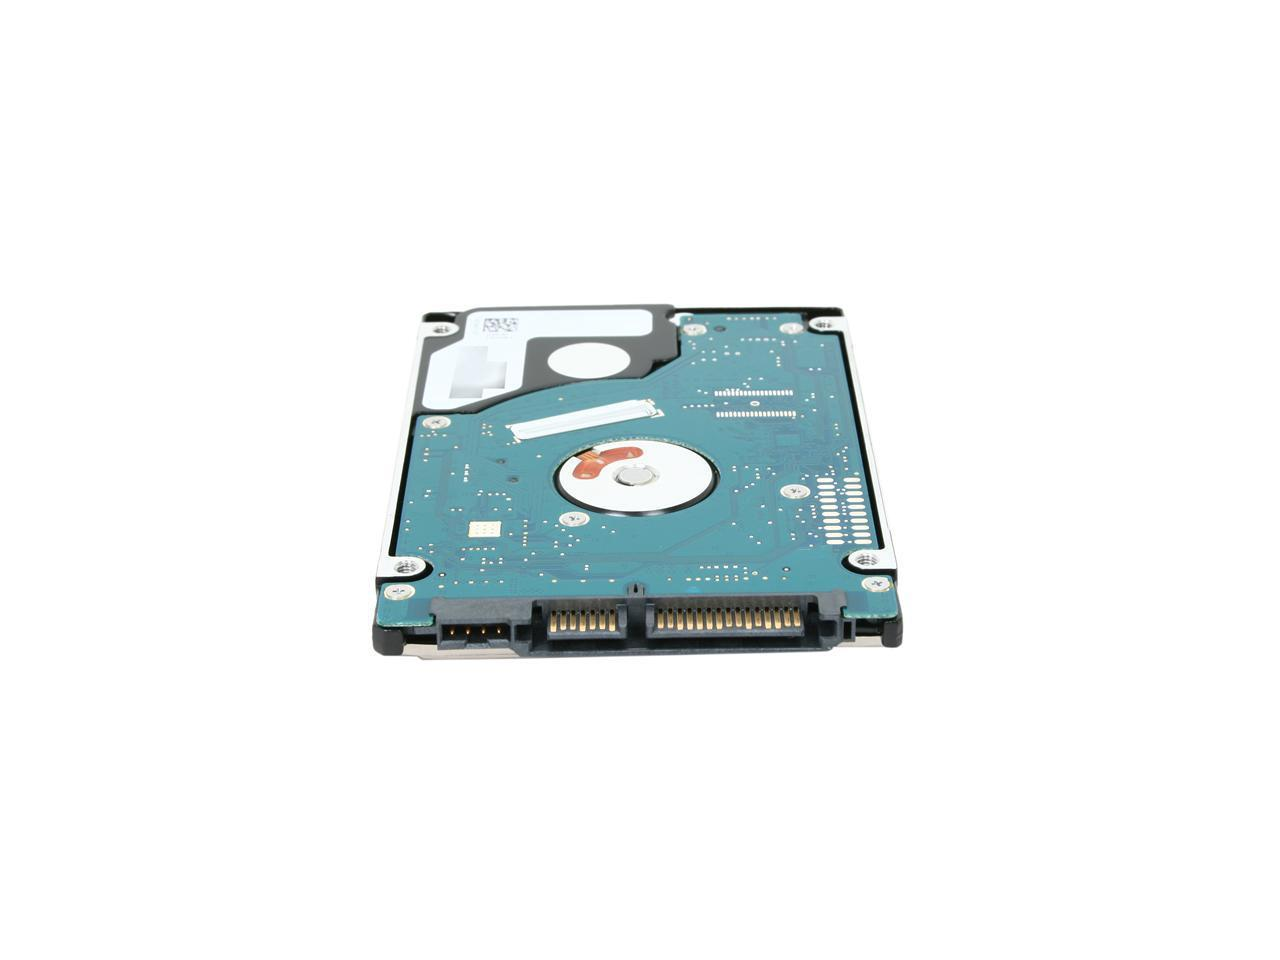 Seagate Momentus 7200.4 ST9500420AS 500GB 7200 RPM 16MB